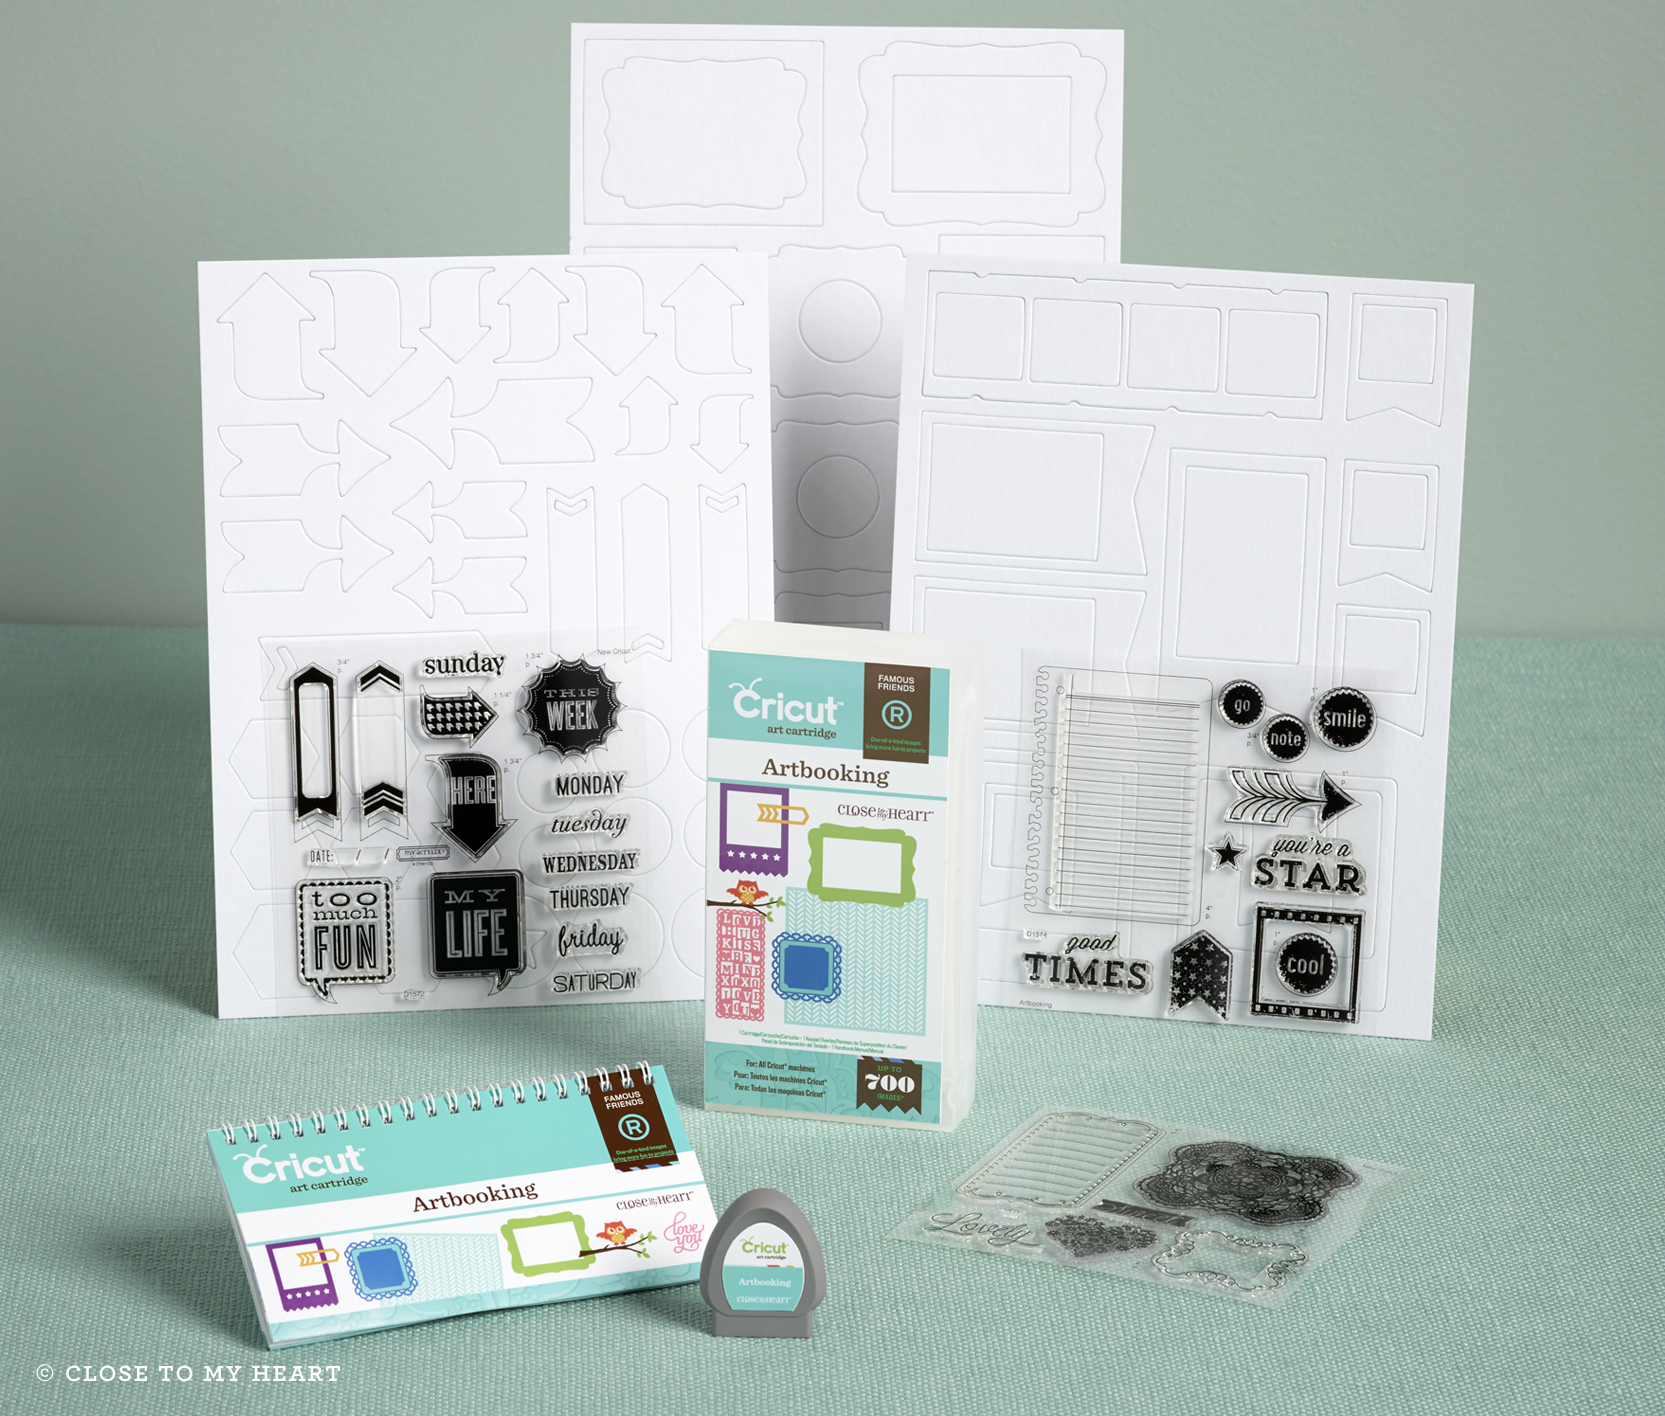 Cricut Artbooking Cartridge